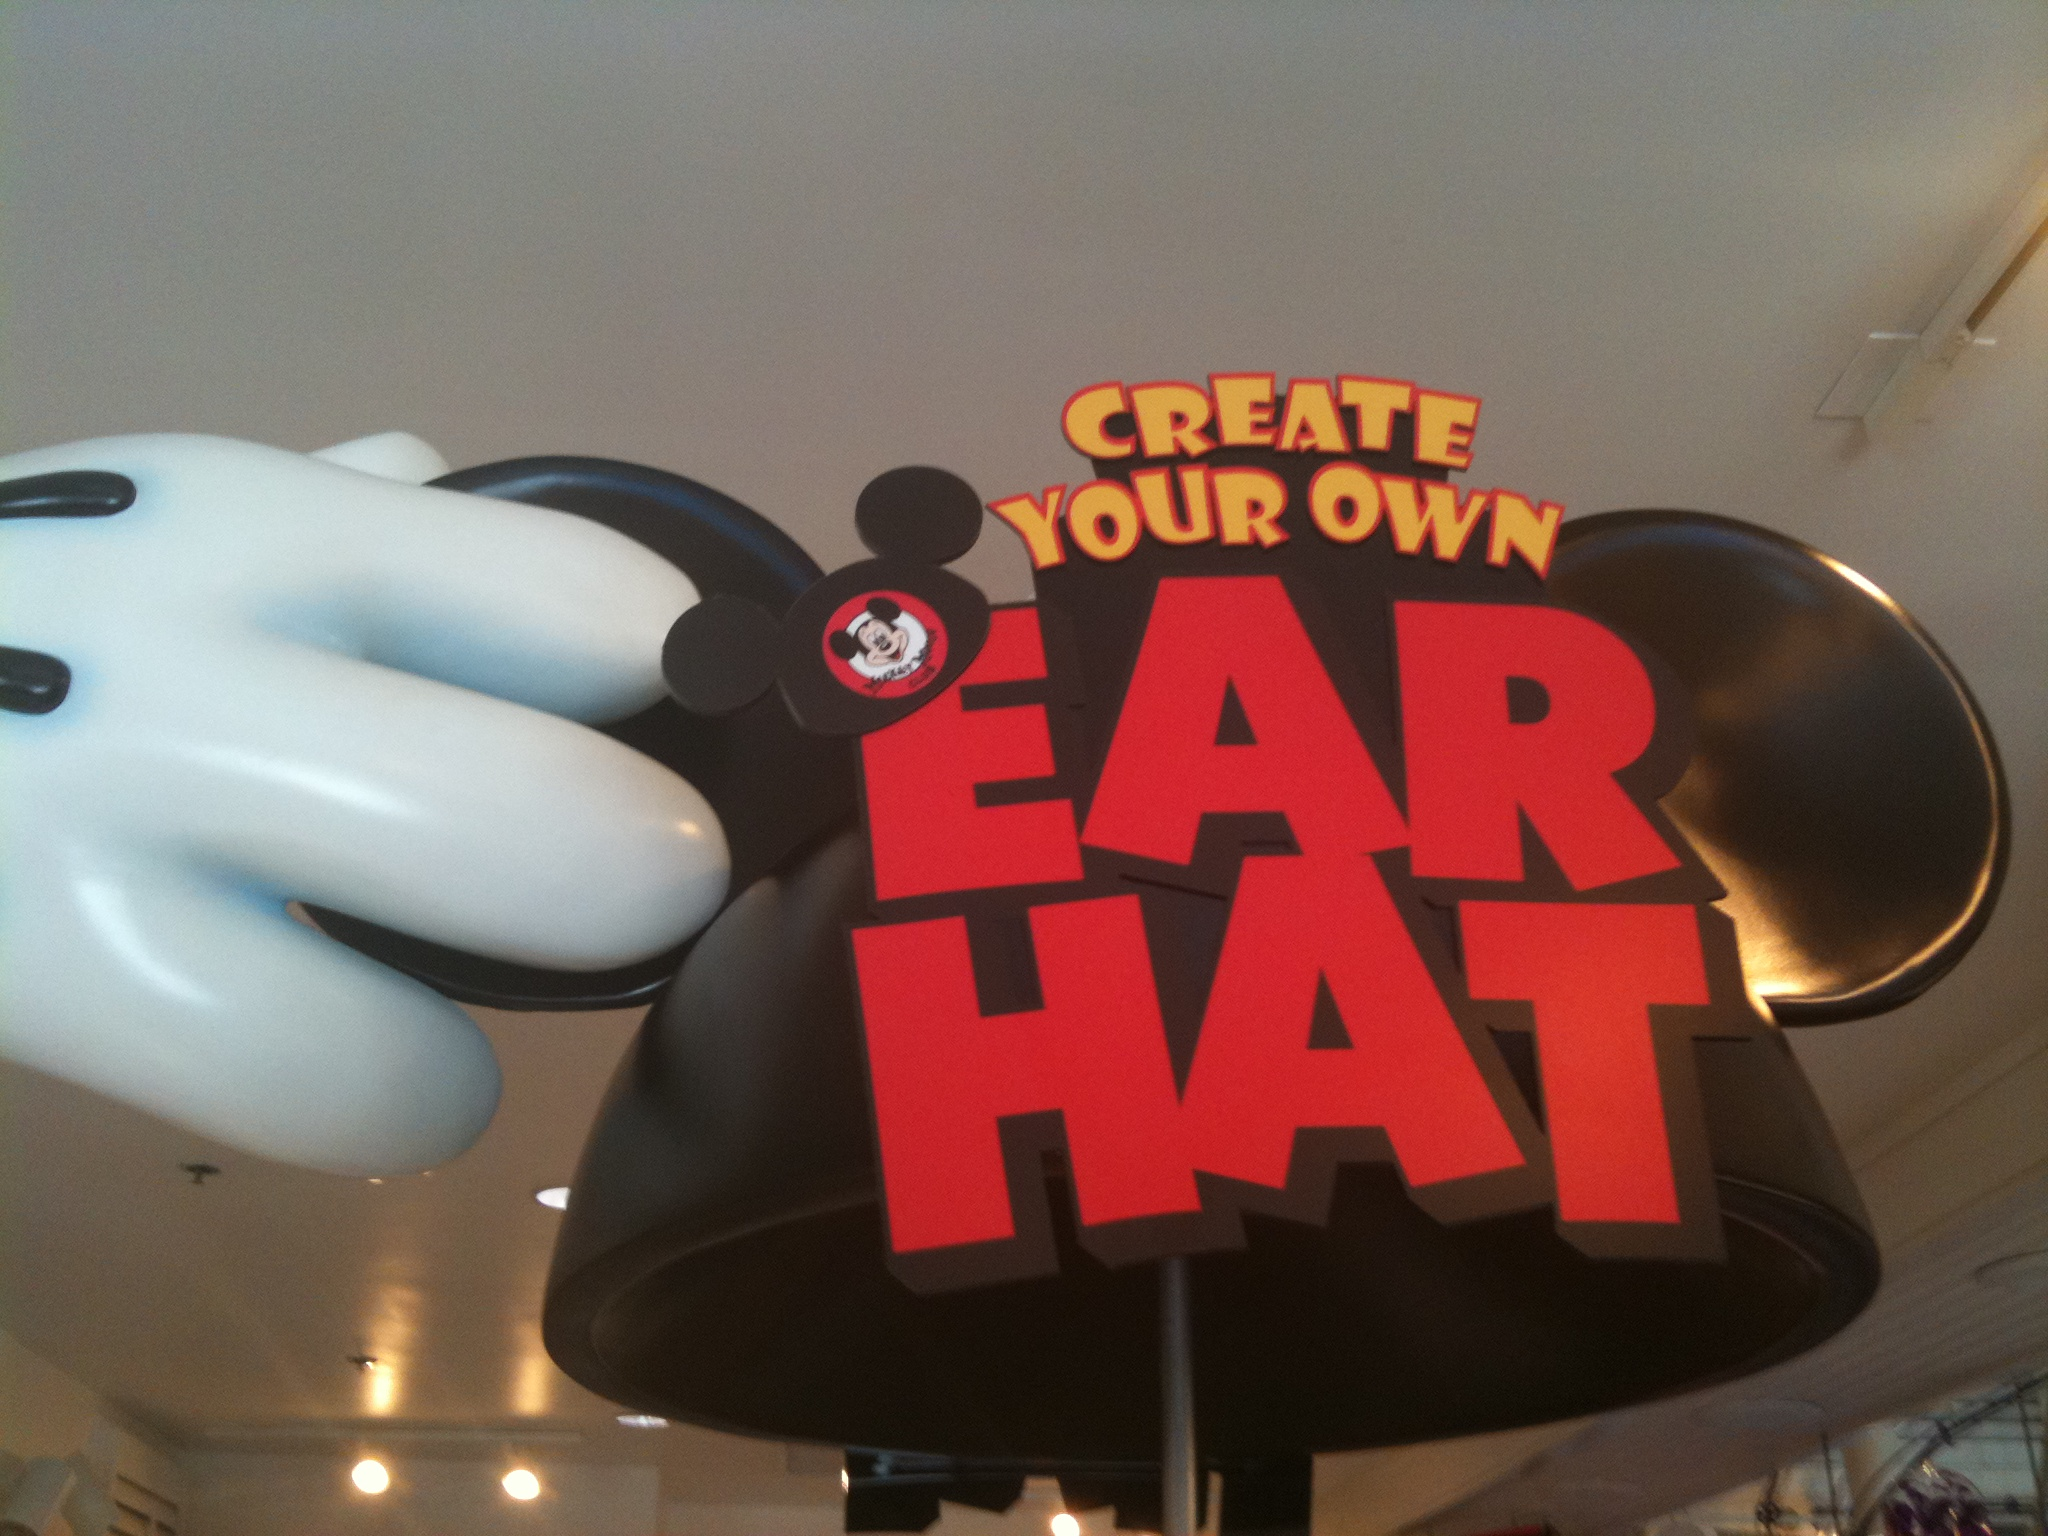 Create Your Own Mickey Mouse Ear Hat at Downtown Disney